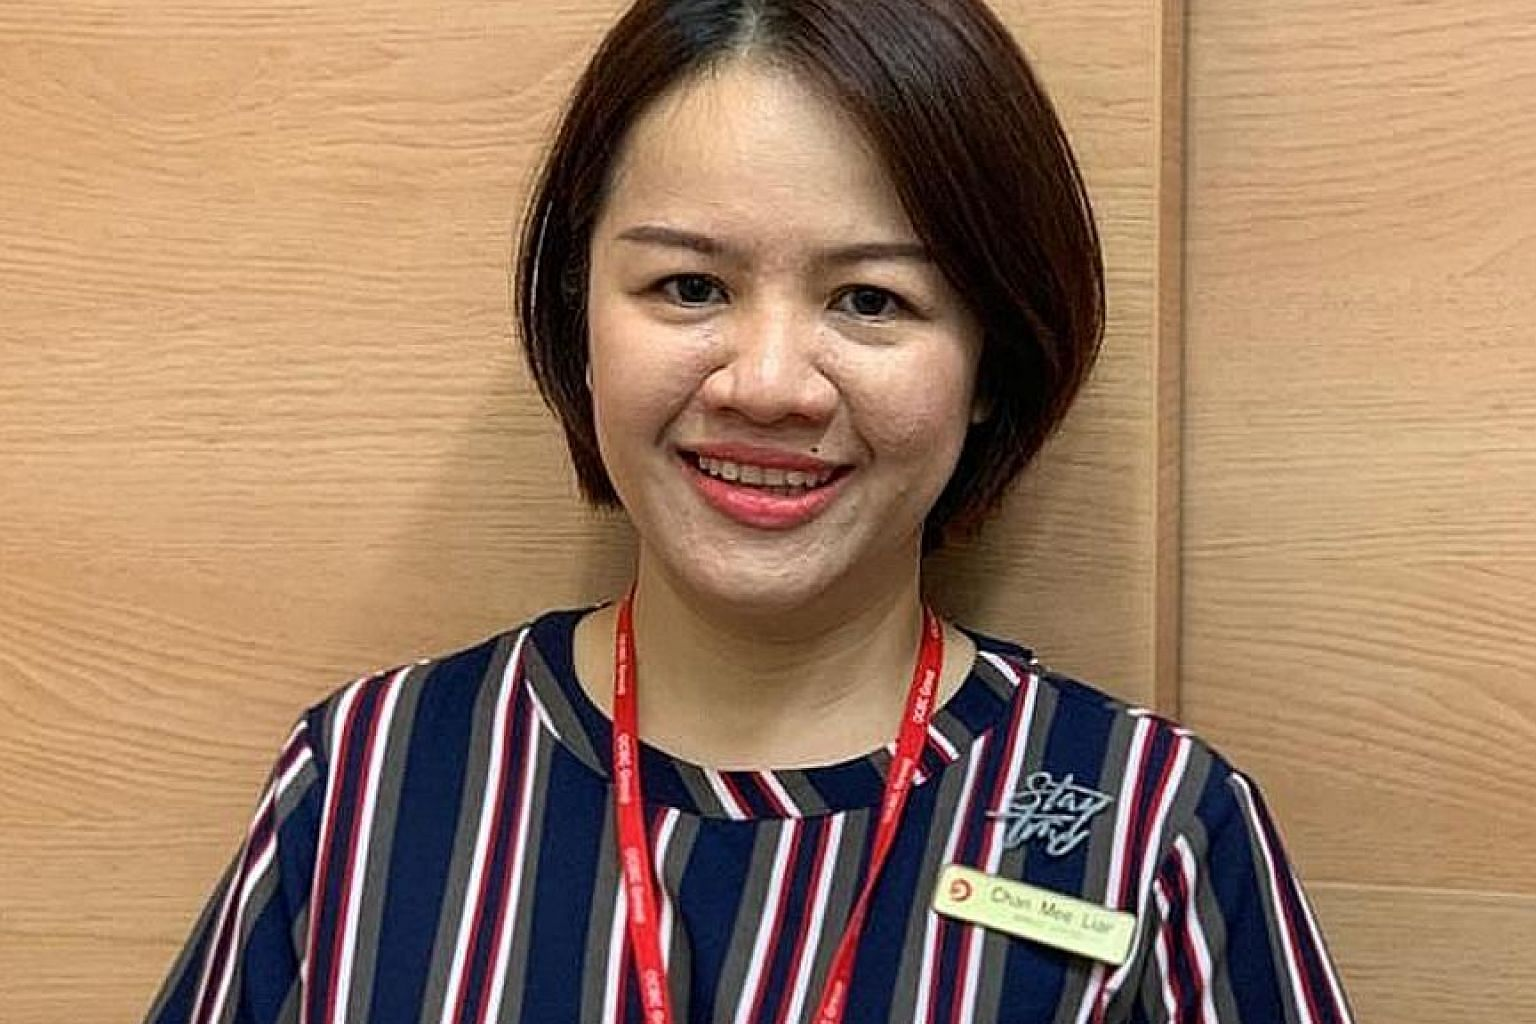 Ms Chan Mee Lian, who has worked in finance for 24 years, said she was suspicious when the customer refused to reveal the purpose of her transactions. PHOTO: OCBC BANK